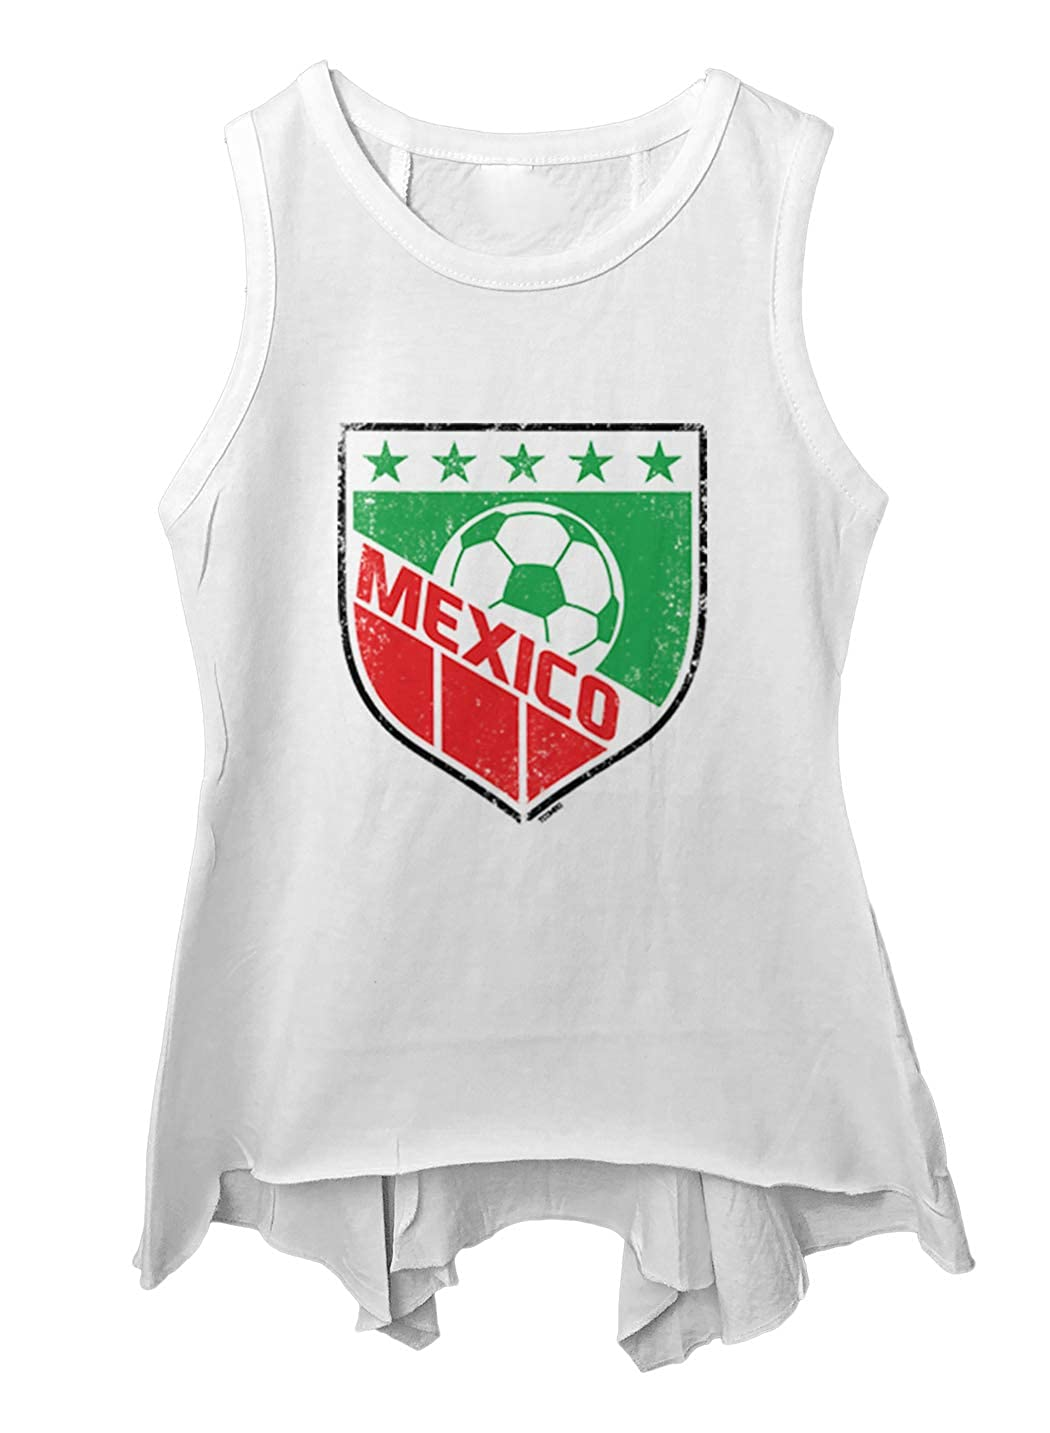 Tcombo Mexico Soccer Distressed Badge Toddler//Youth Sleeveless Backswing